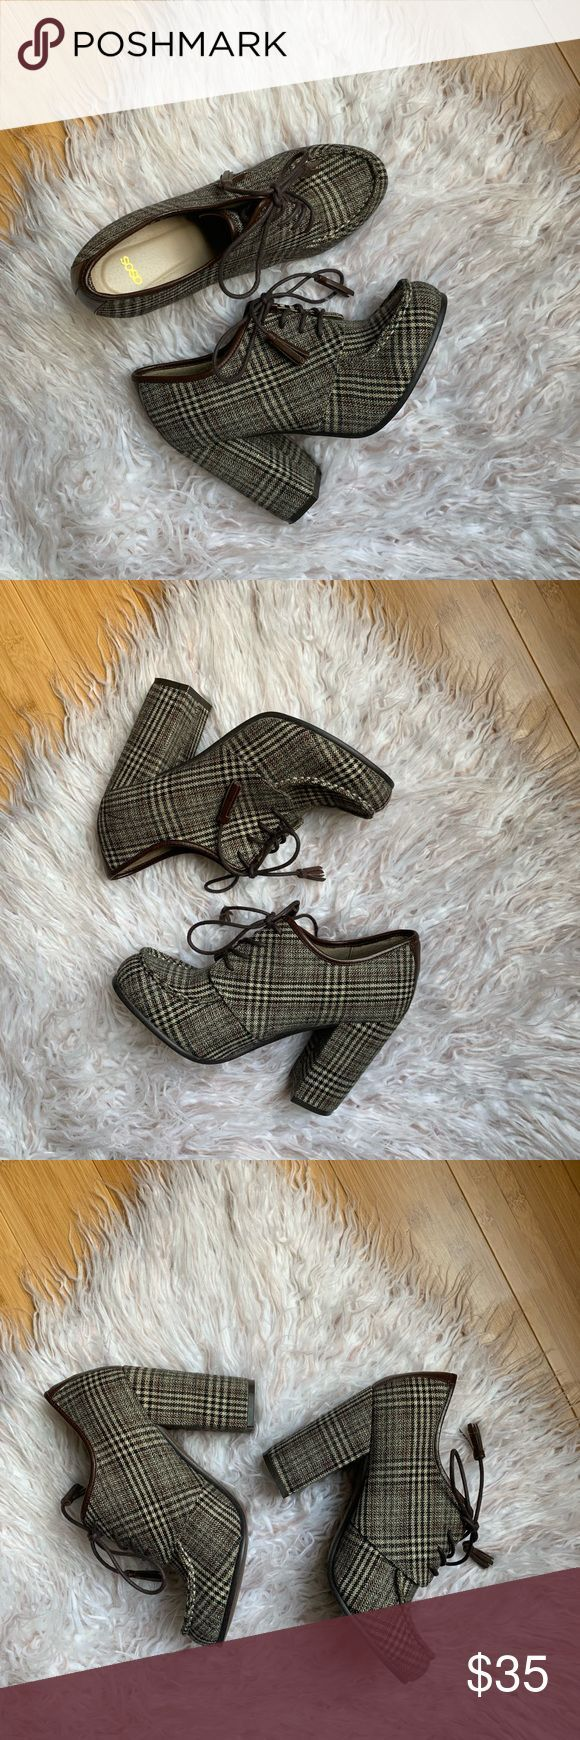 ASOS Plaid Lace Up Tassel Oxford chunky heel boot Good pre owned condition wore ASOS Plaid Lace Up Tassel Oxford chunky heel boot Good pre owned condition wore